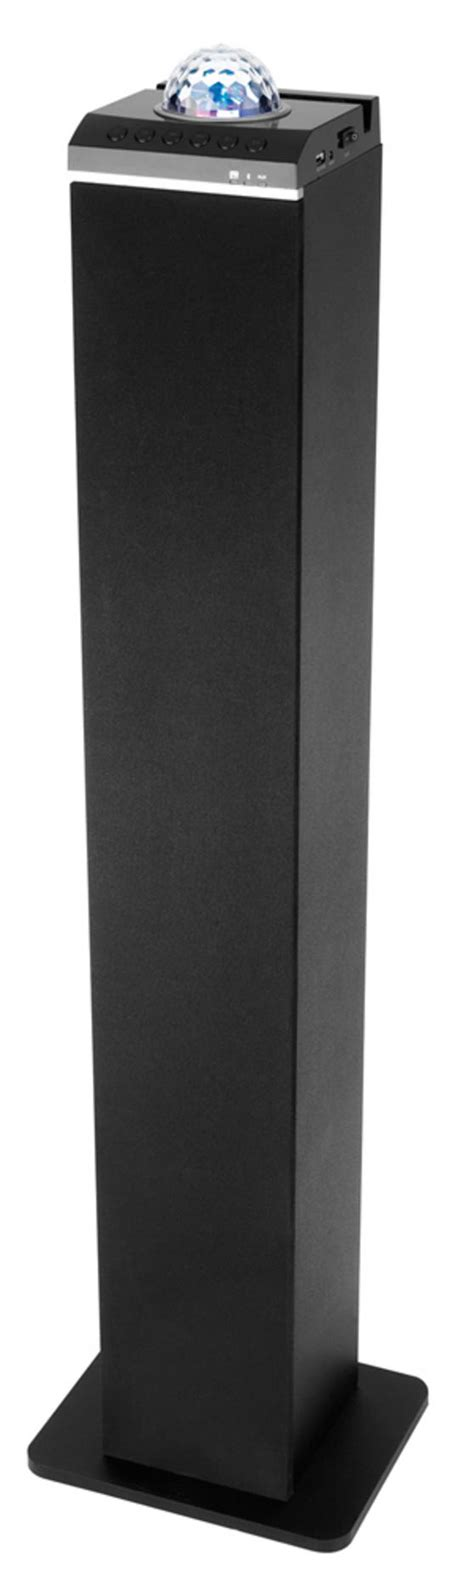 speaker with disco light intempo bluetooth tower speaker with disco light